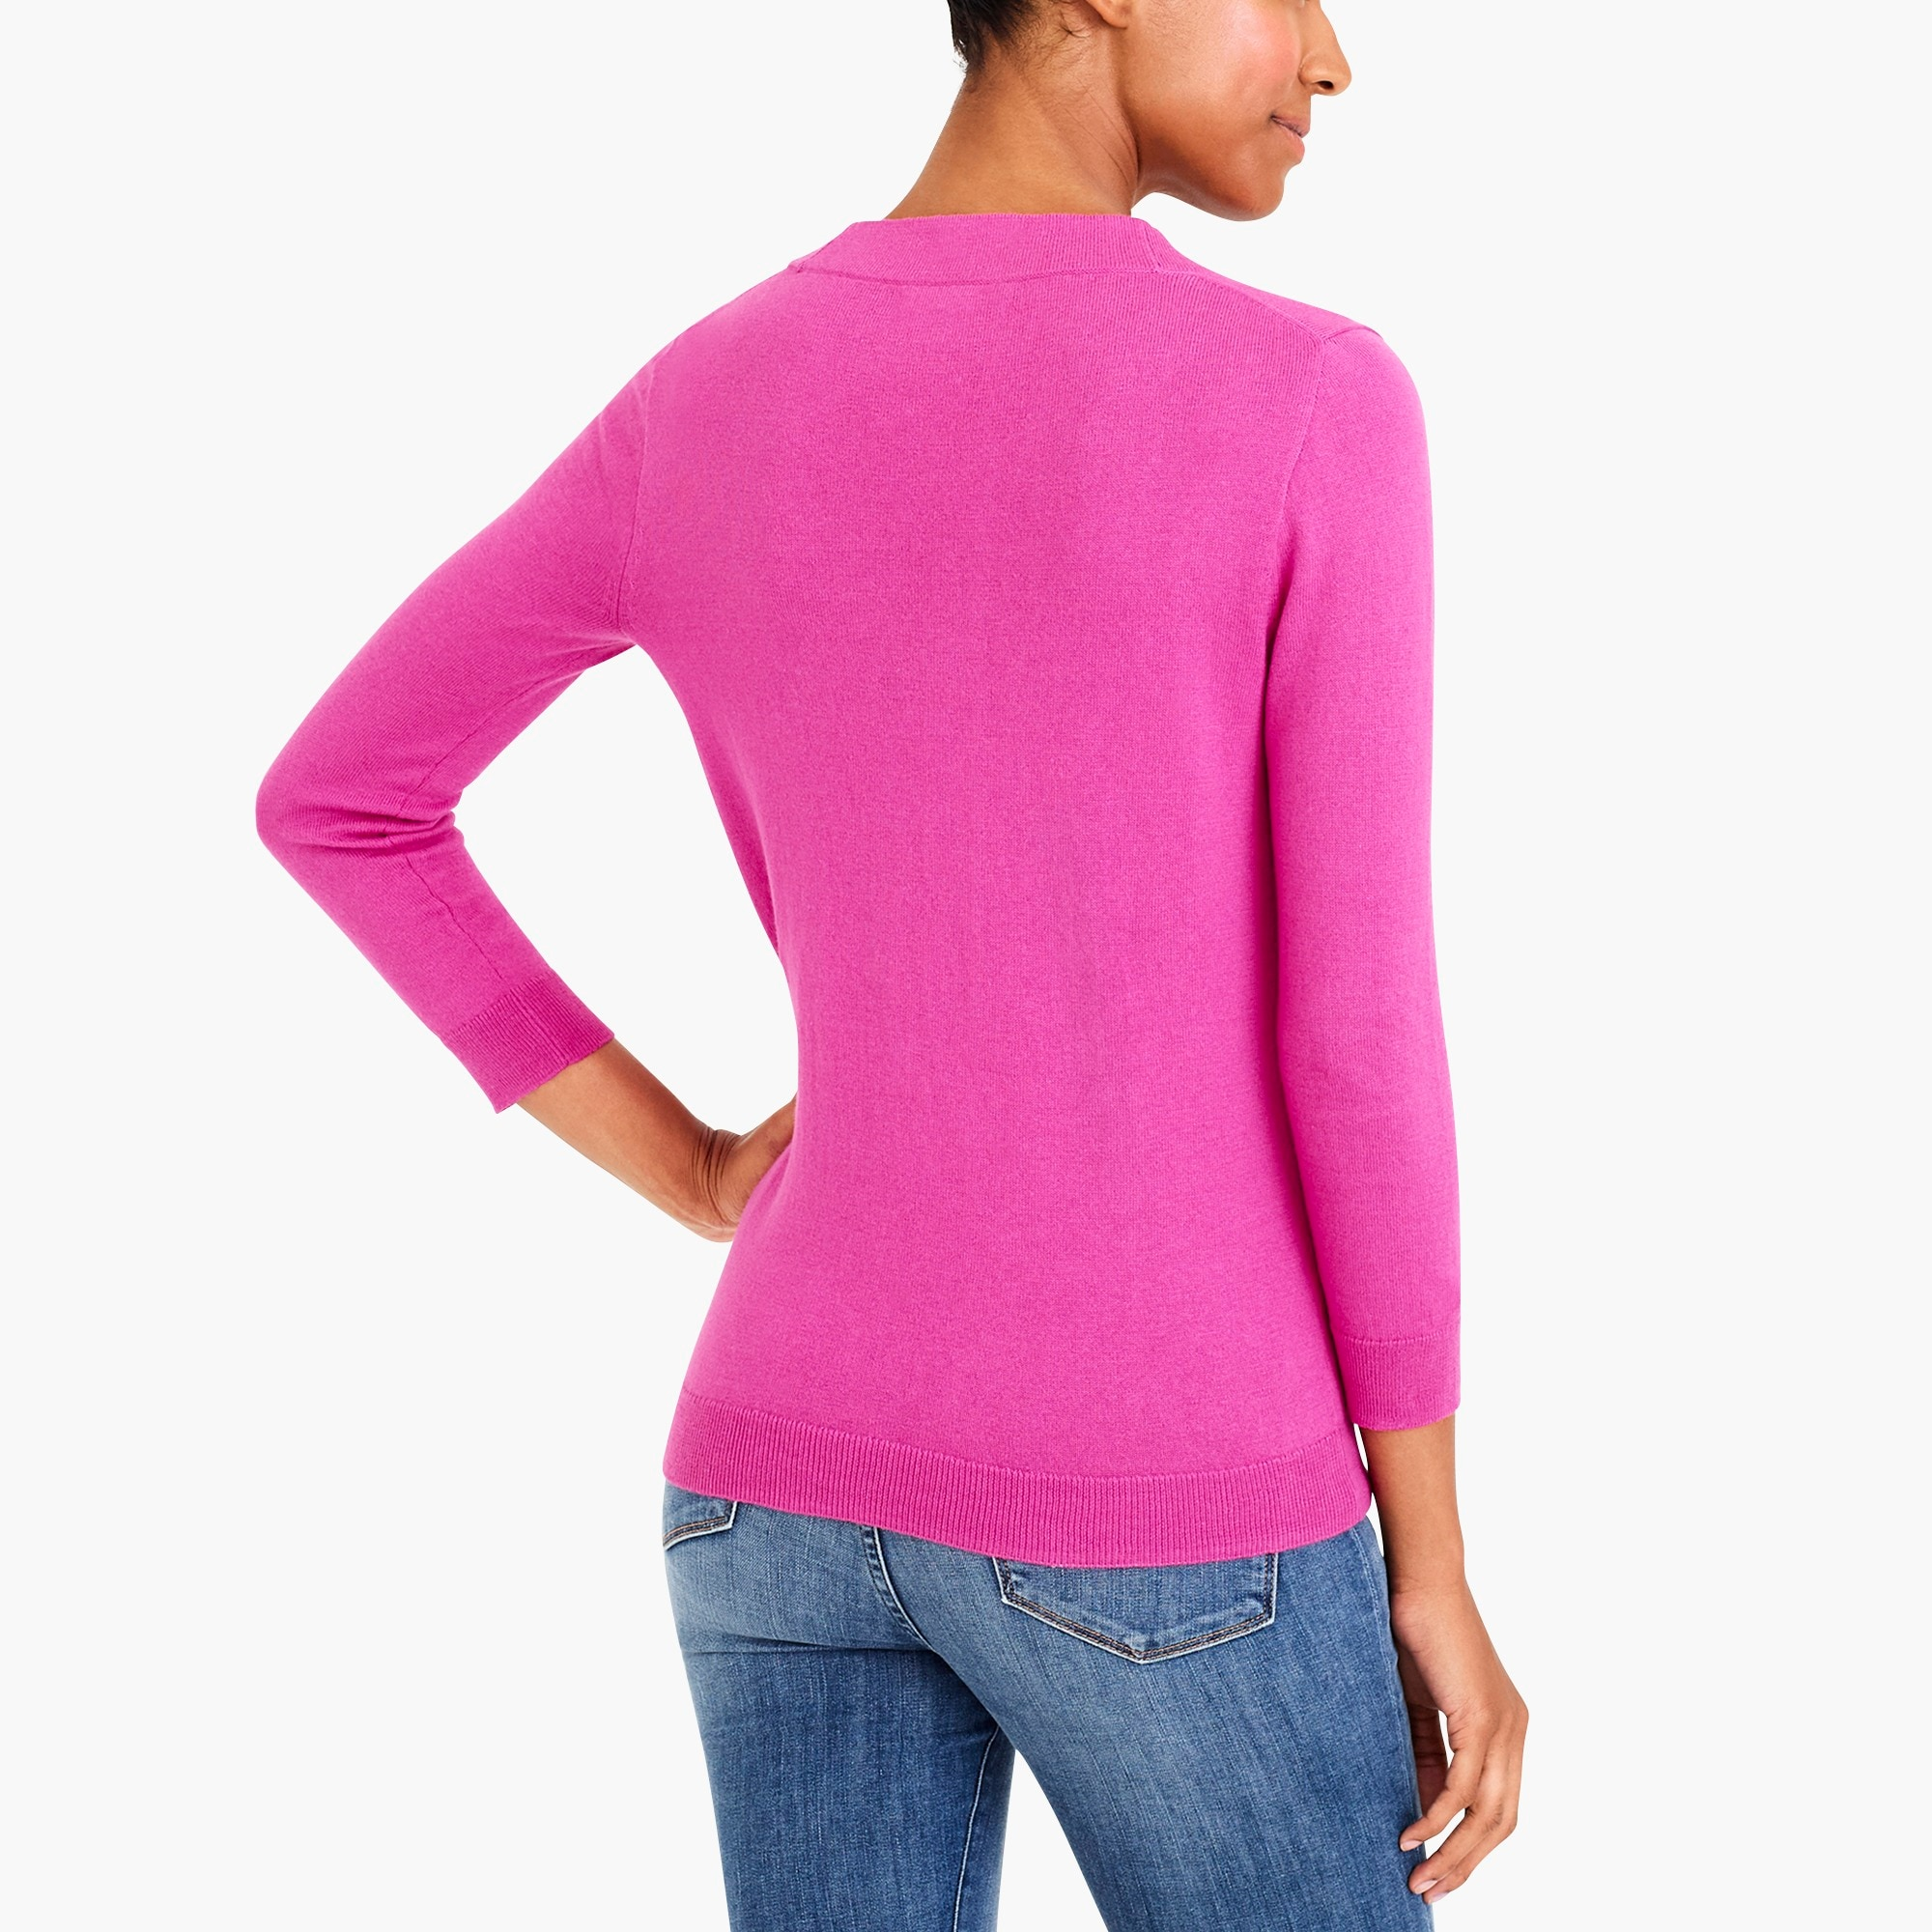 Bow v-neck sweater